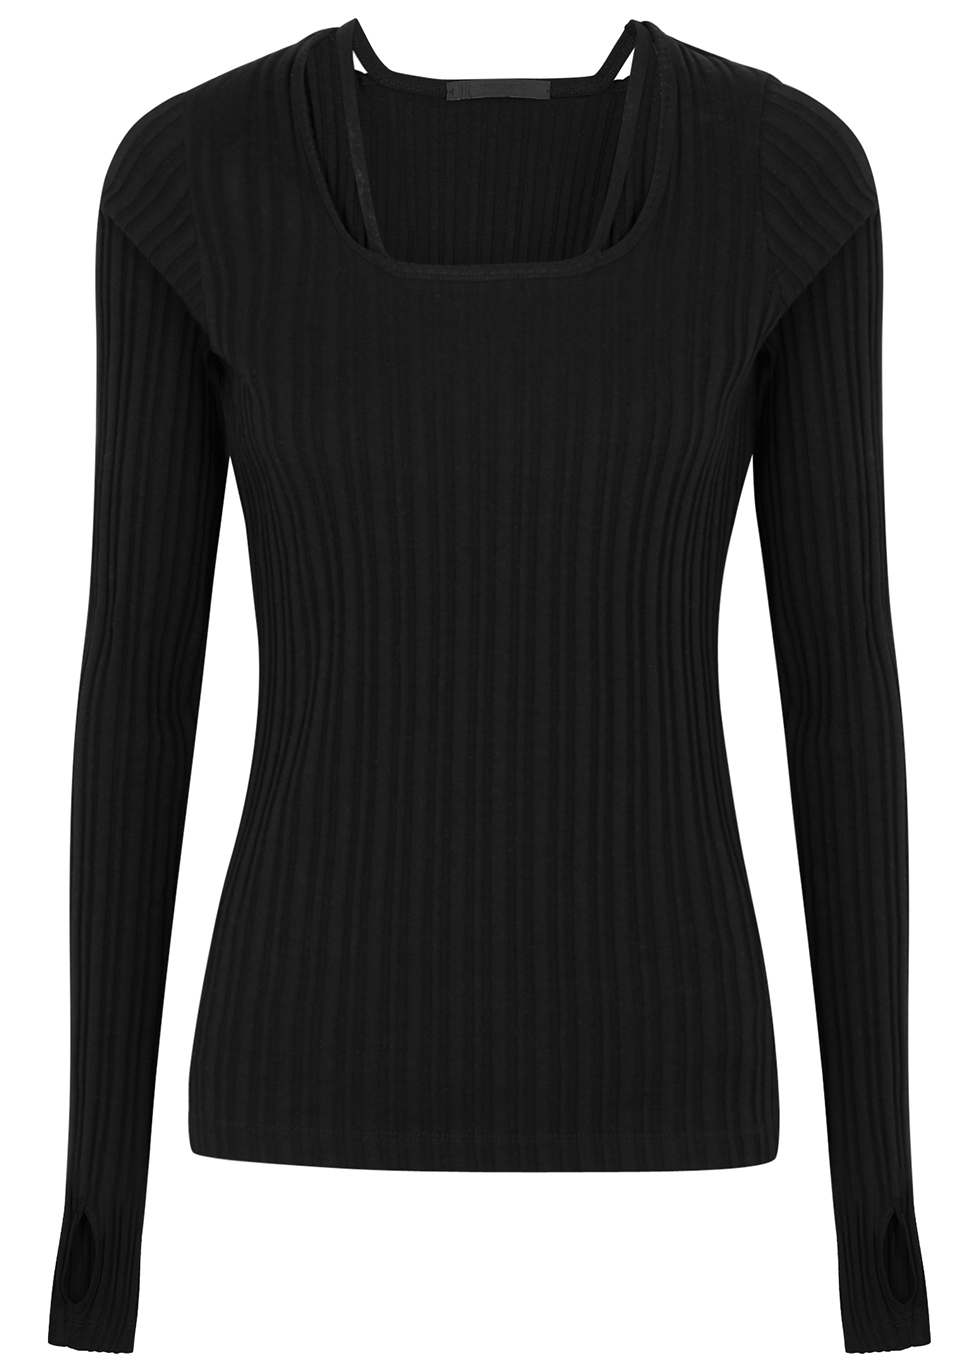 Black ribbed cotton top